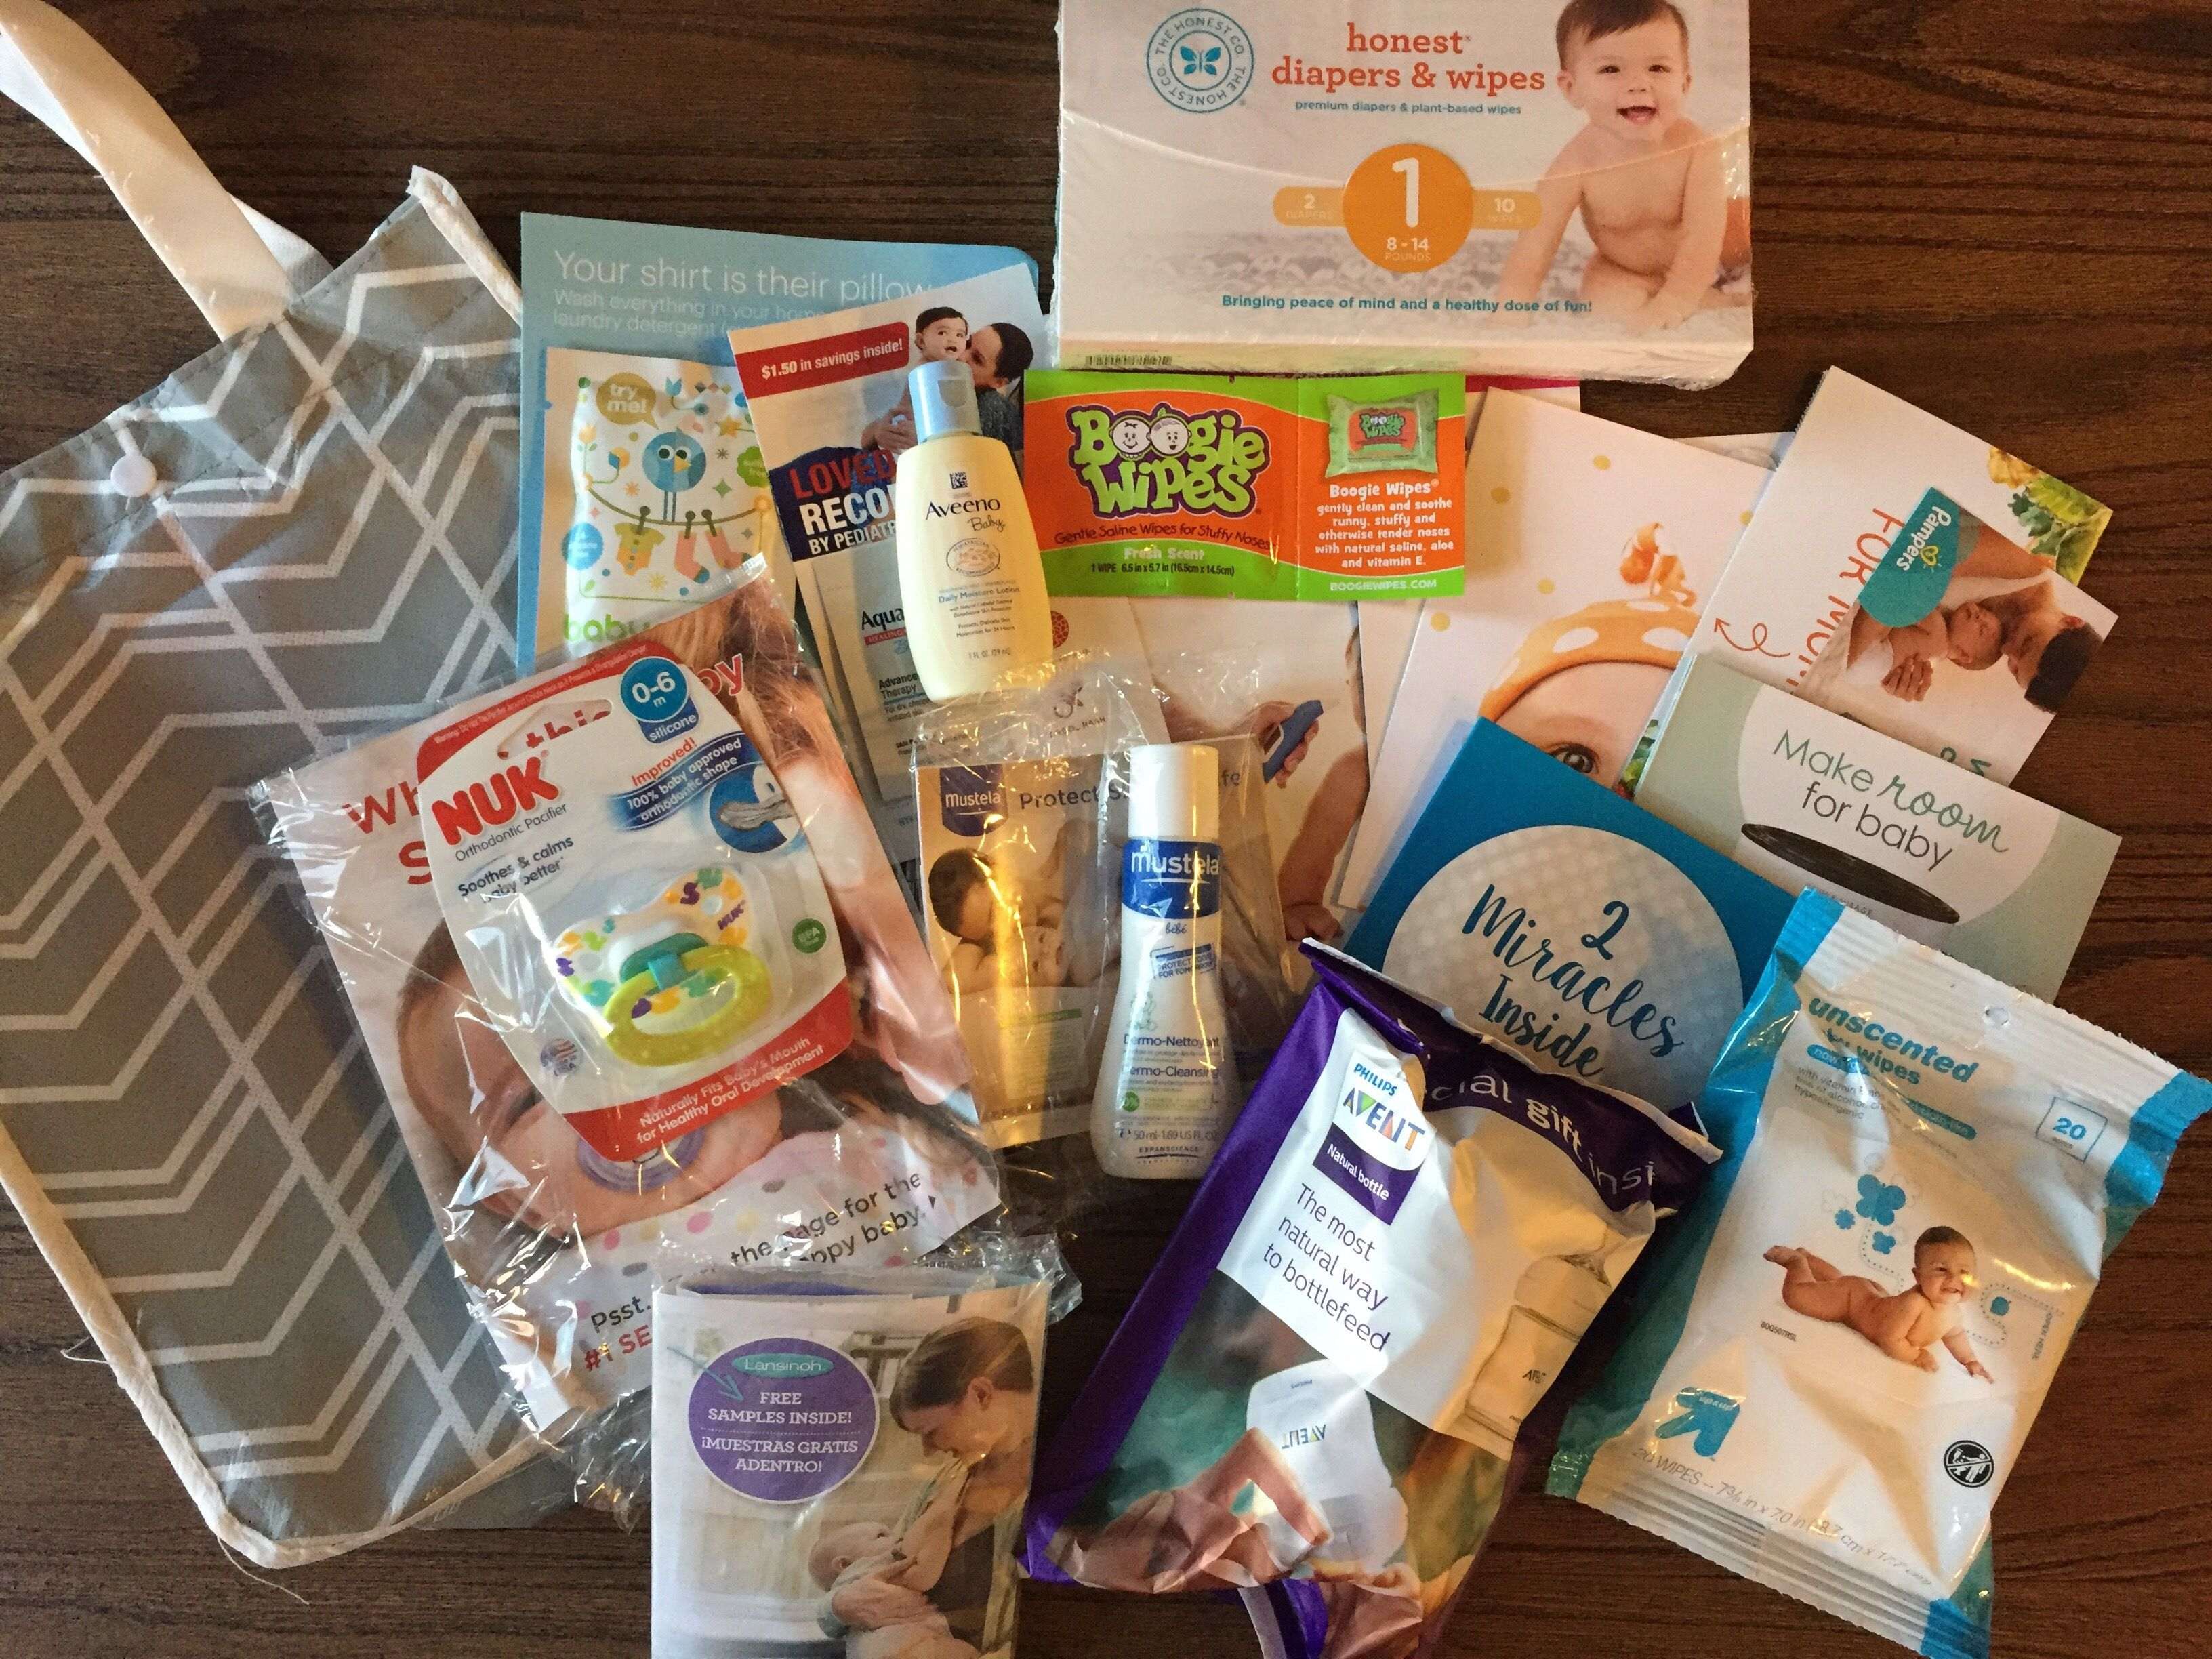 Target Registry Complimentary Gift Review Honest diapers